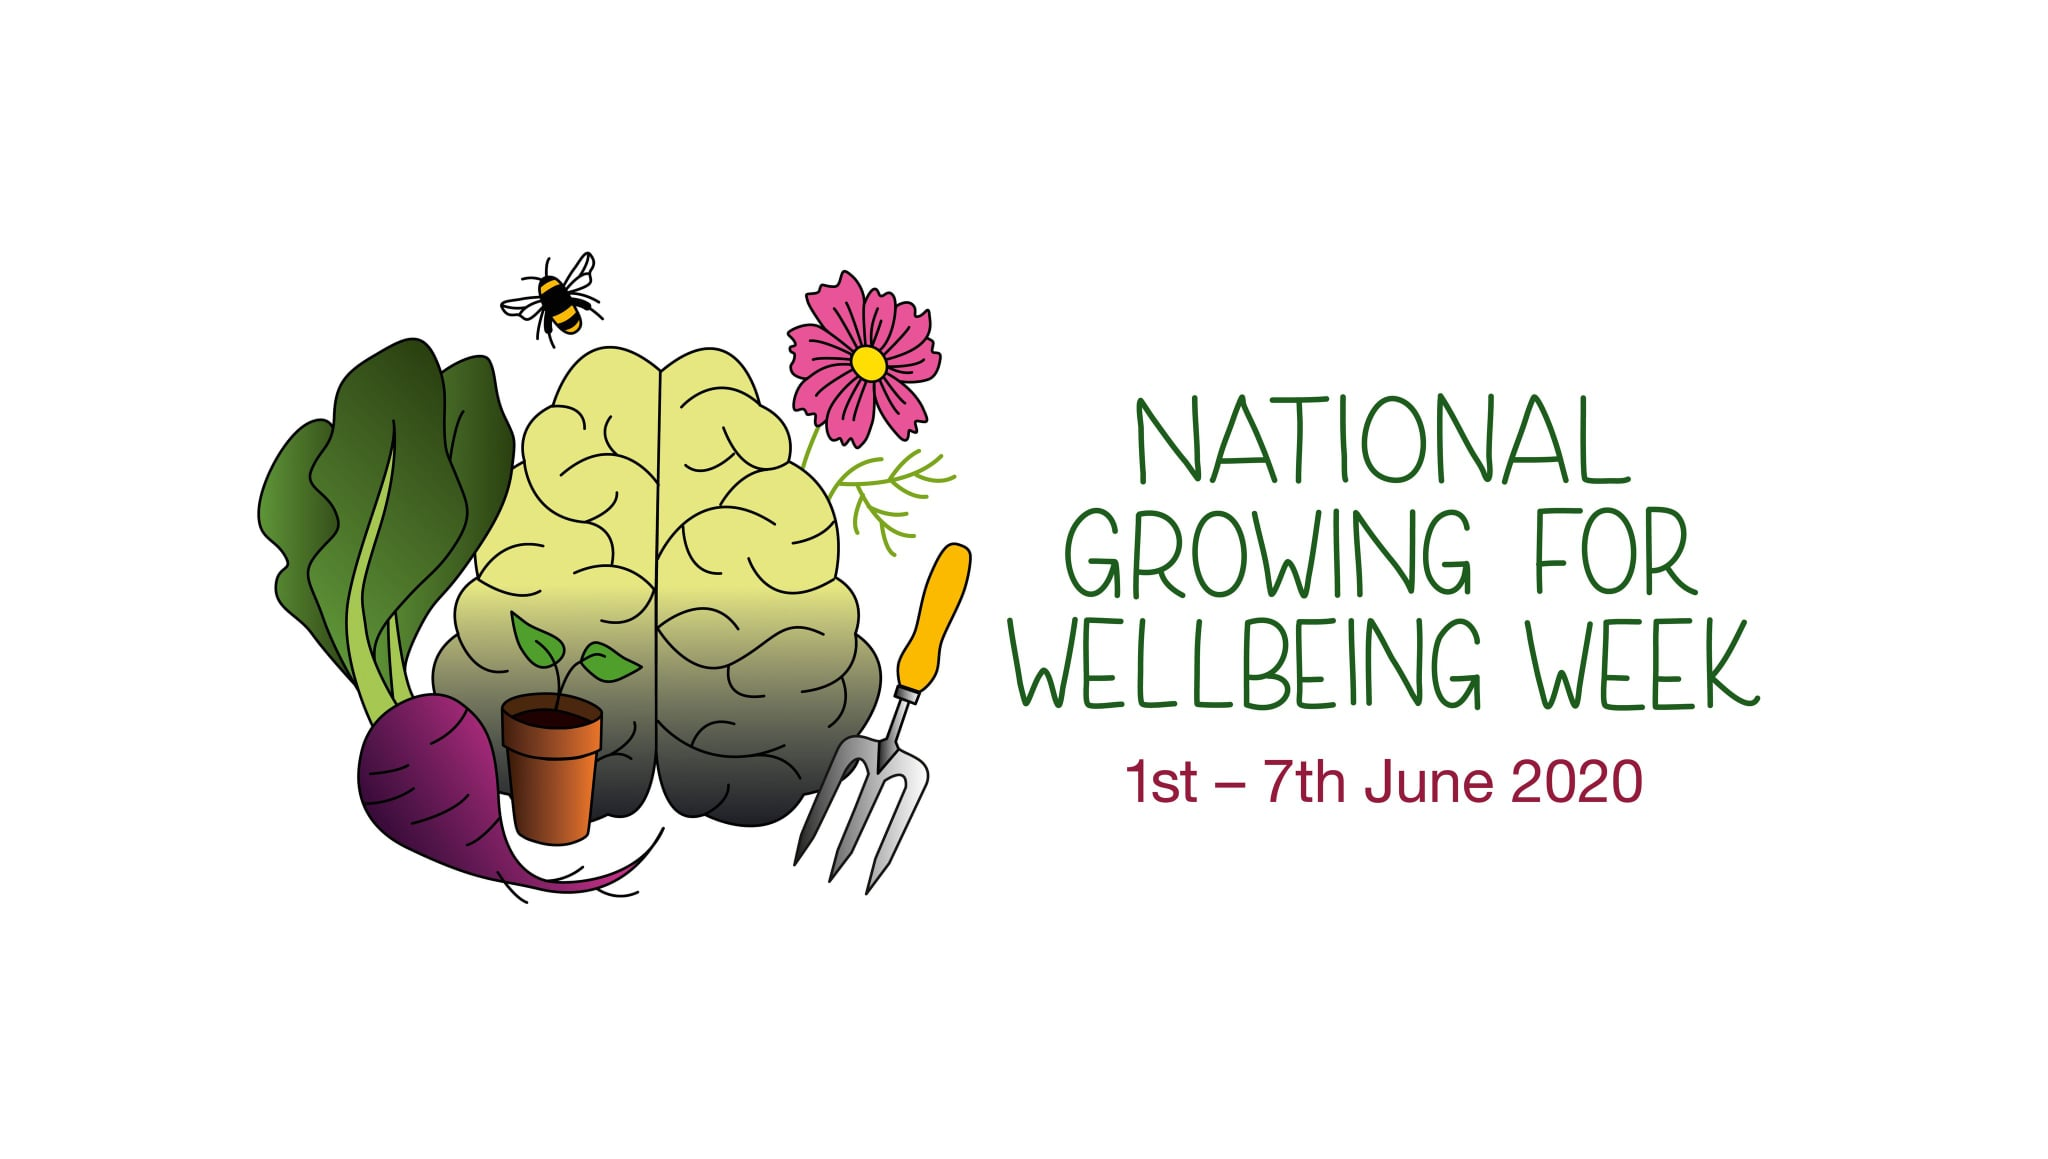 Wellbeing week